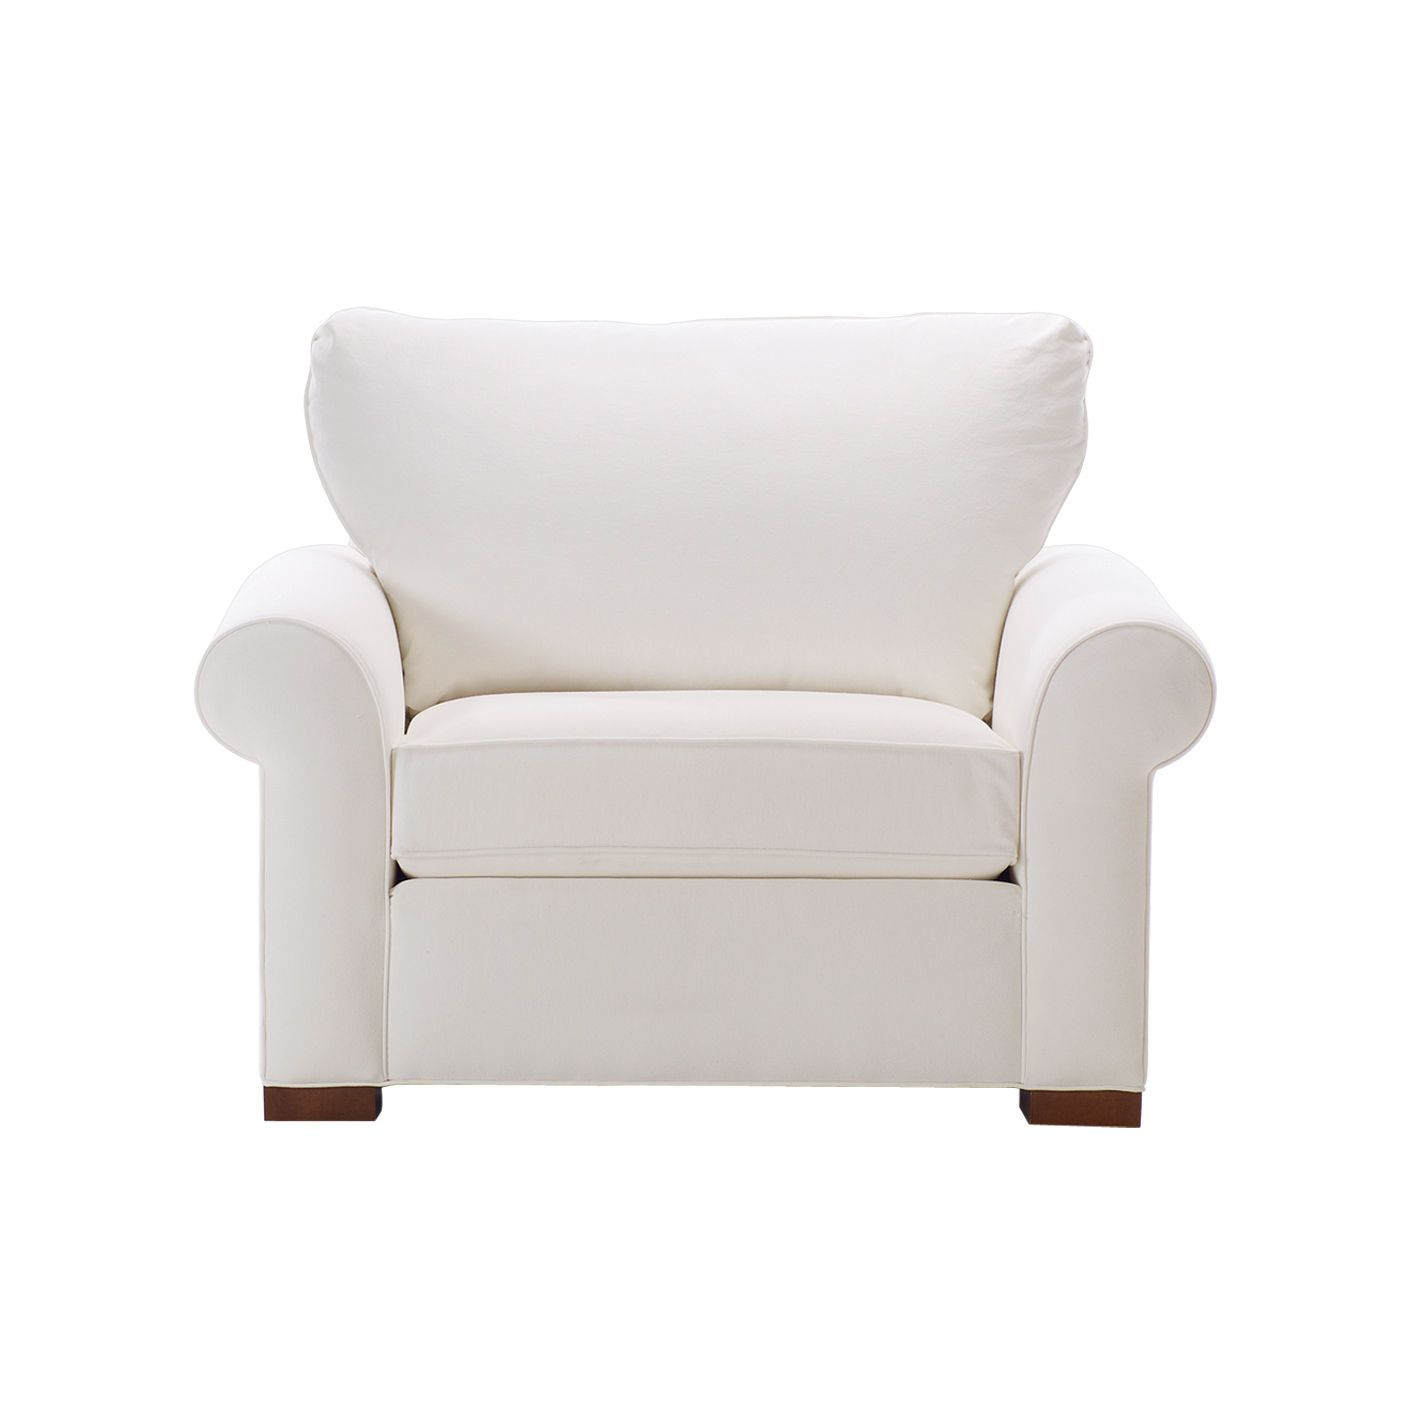 Sofa Outlet Cheshire Cheshire Roll Arm Chair Ethan Allen Us Home Decor Living